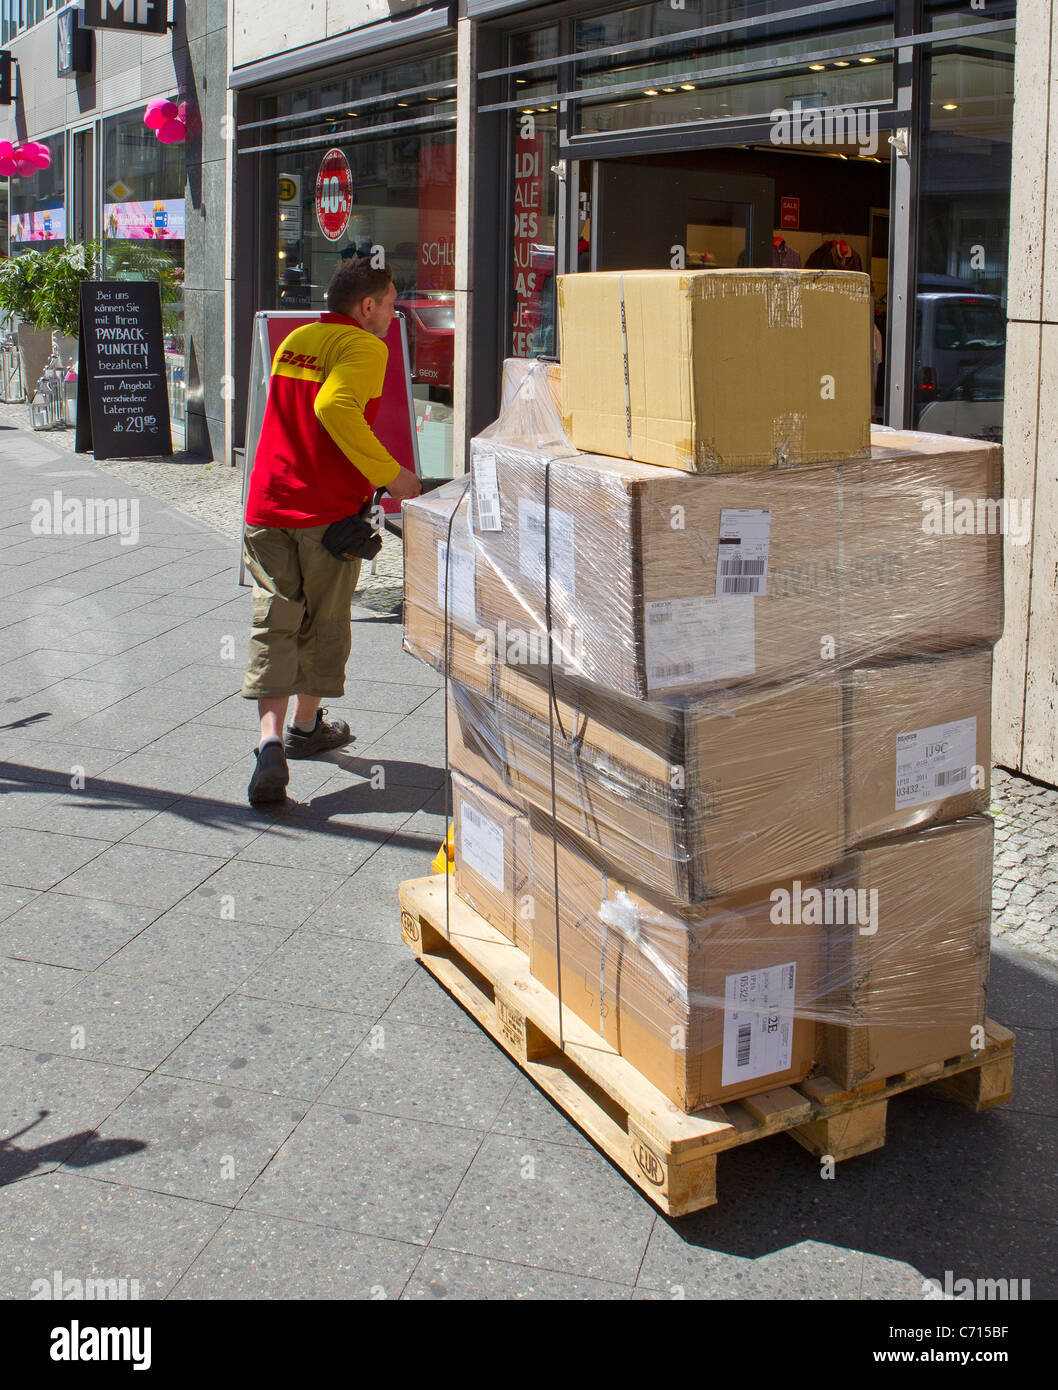 dhl courier deliver delivery boxes packages street - Stock Image